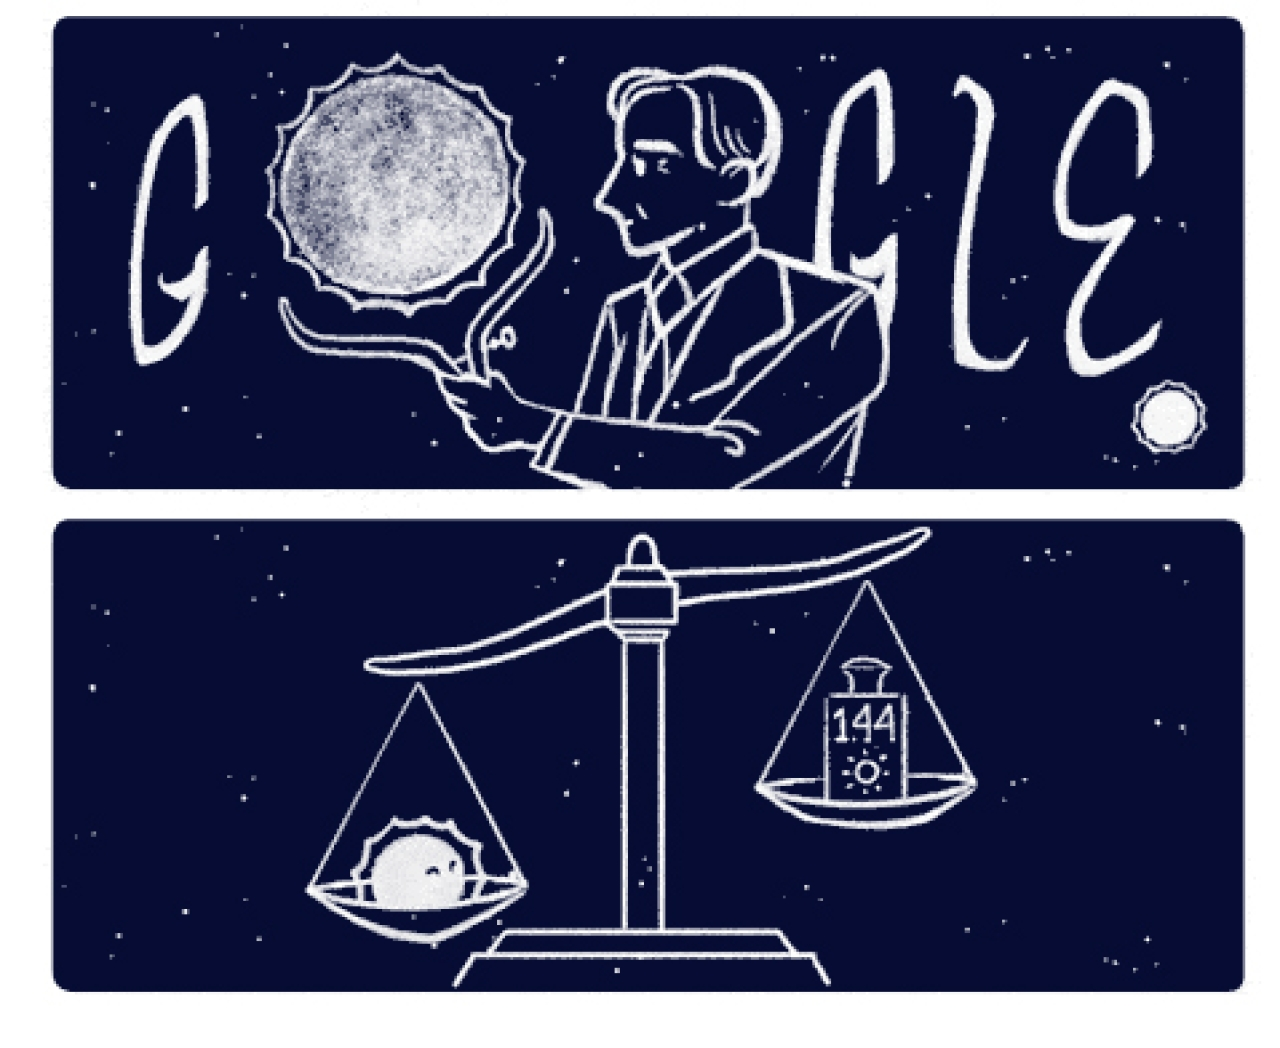 Doodle images put out by Google to honour astrophysicist Chandrasekhar Subrahmanyan (1910-1995)